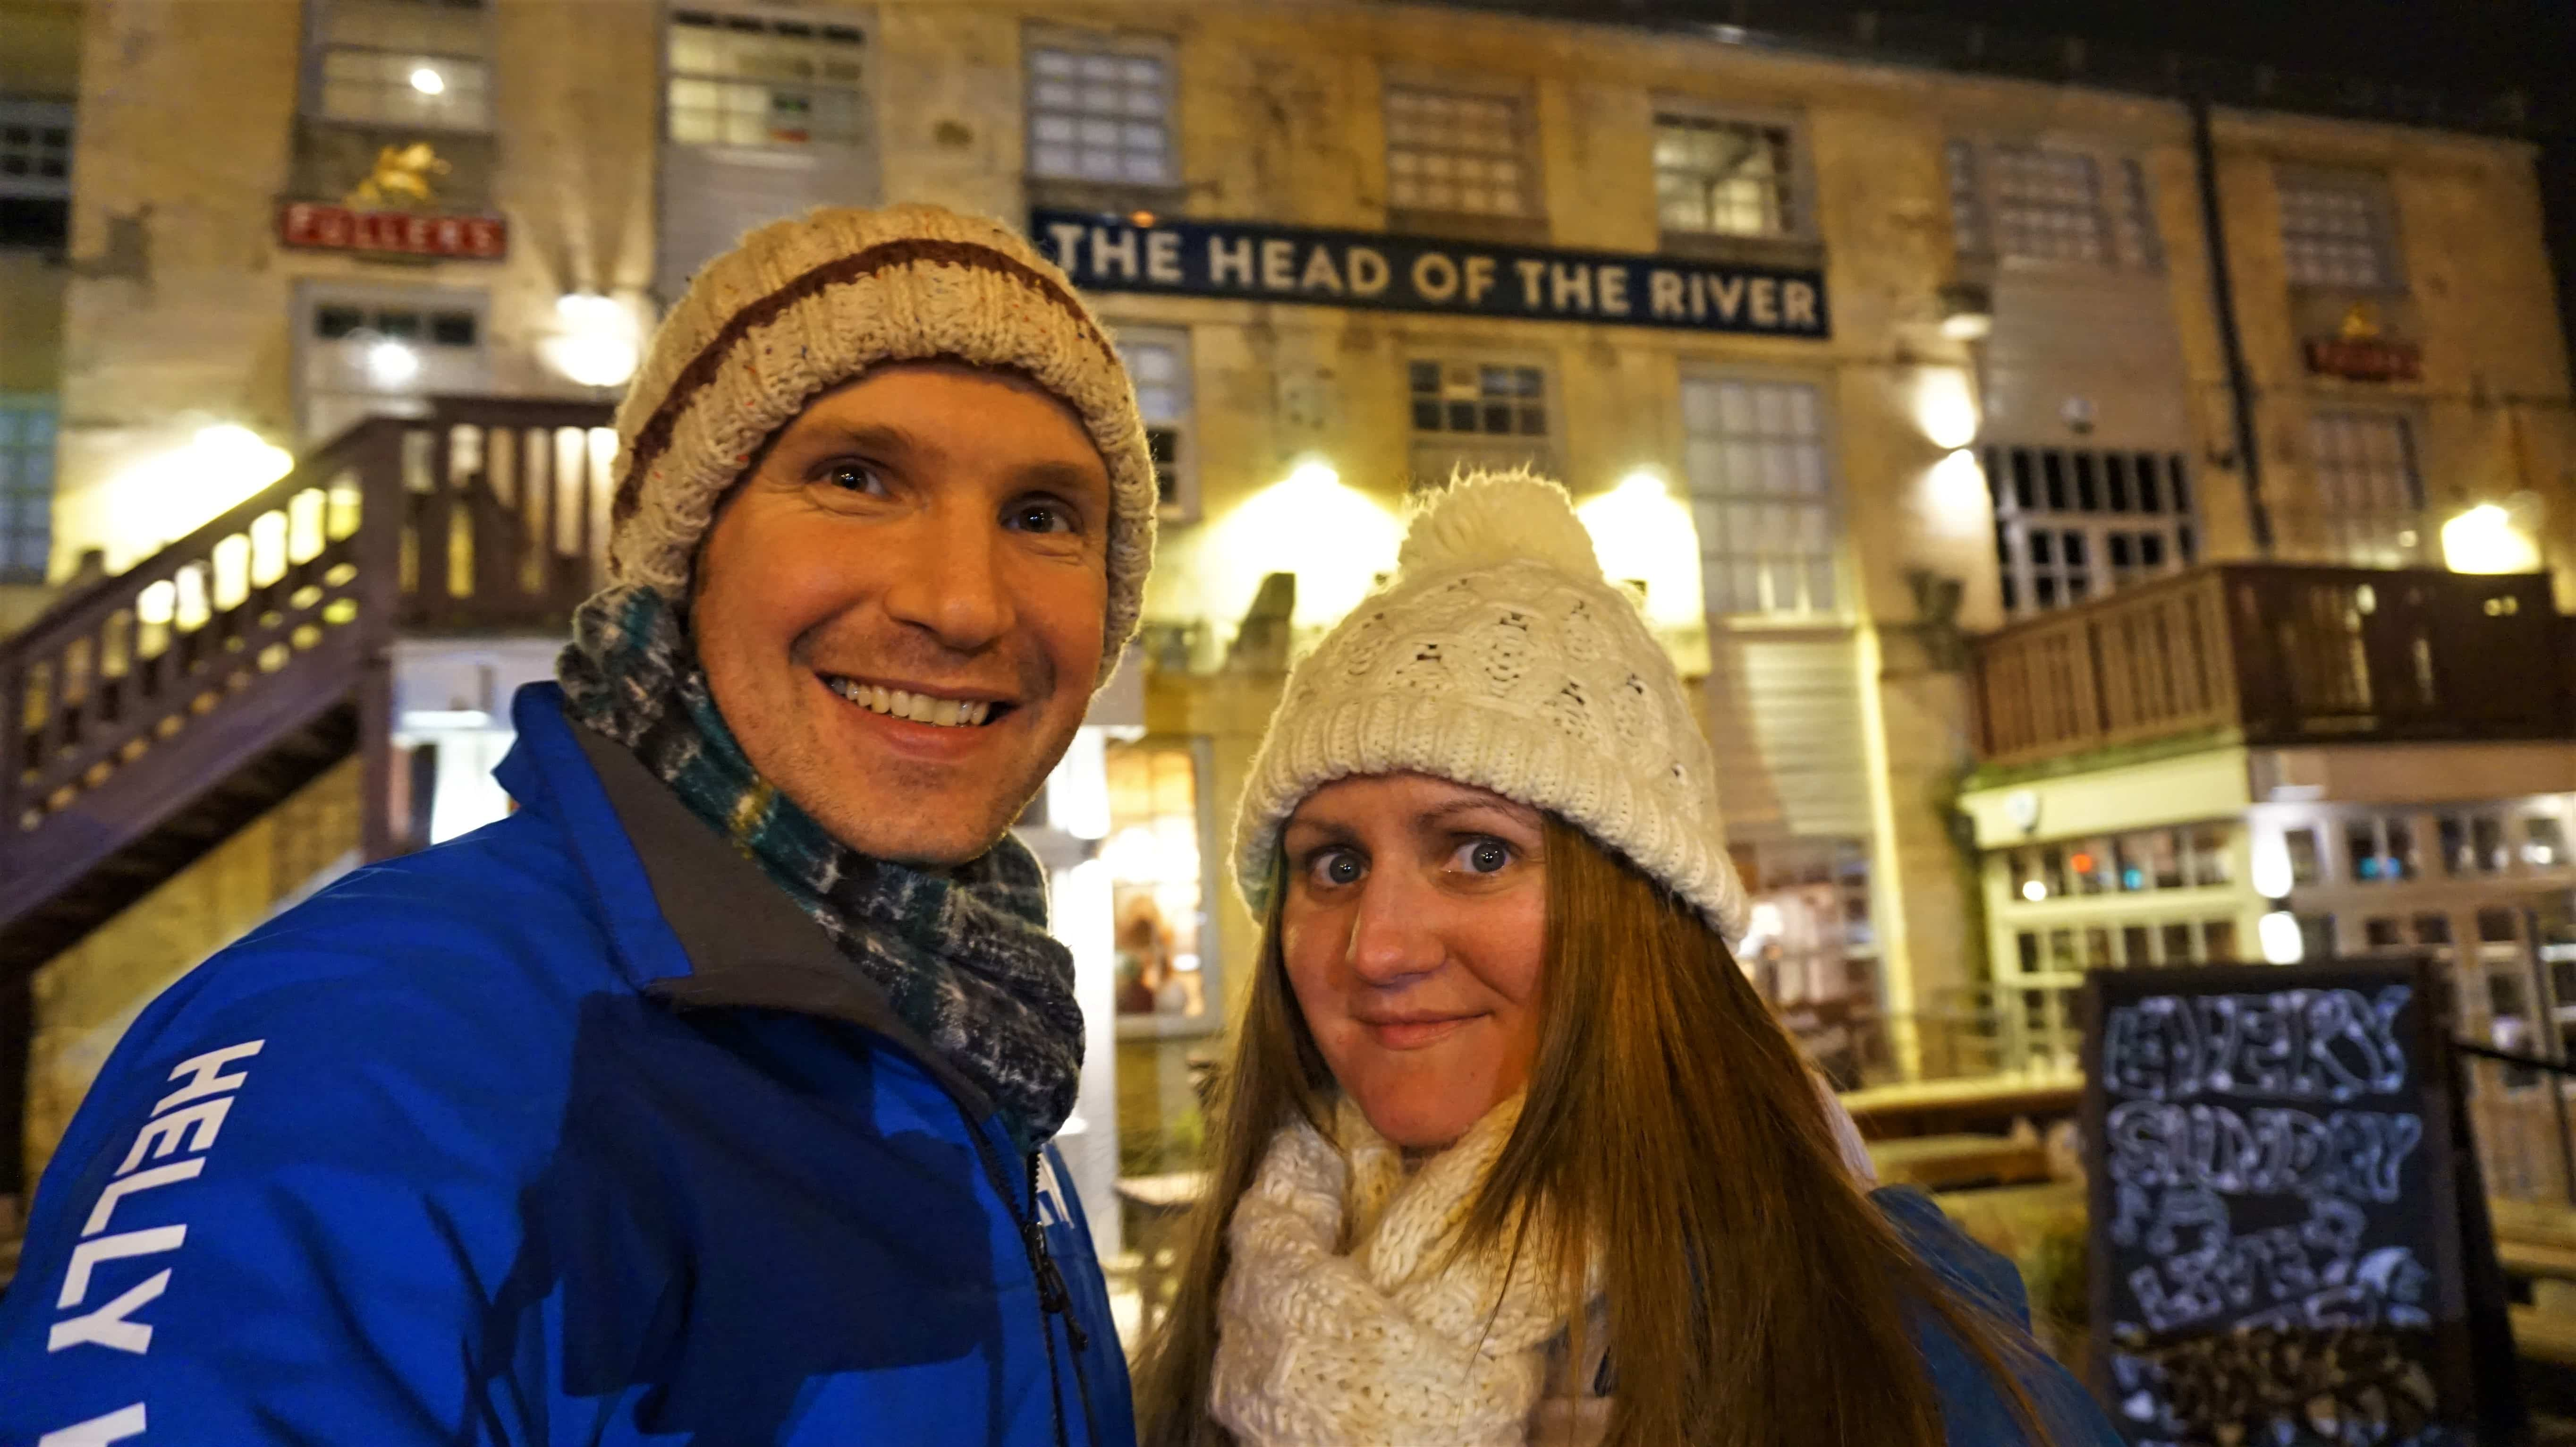 Selfie outside the Head of the River in Oxford